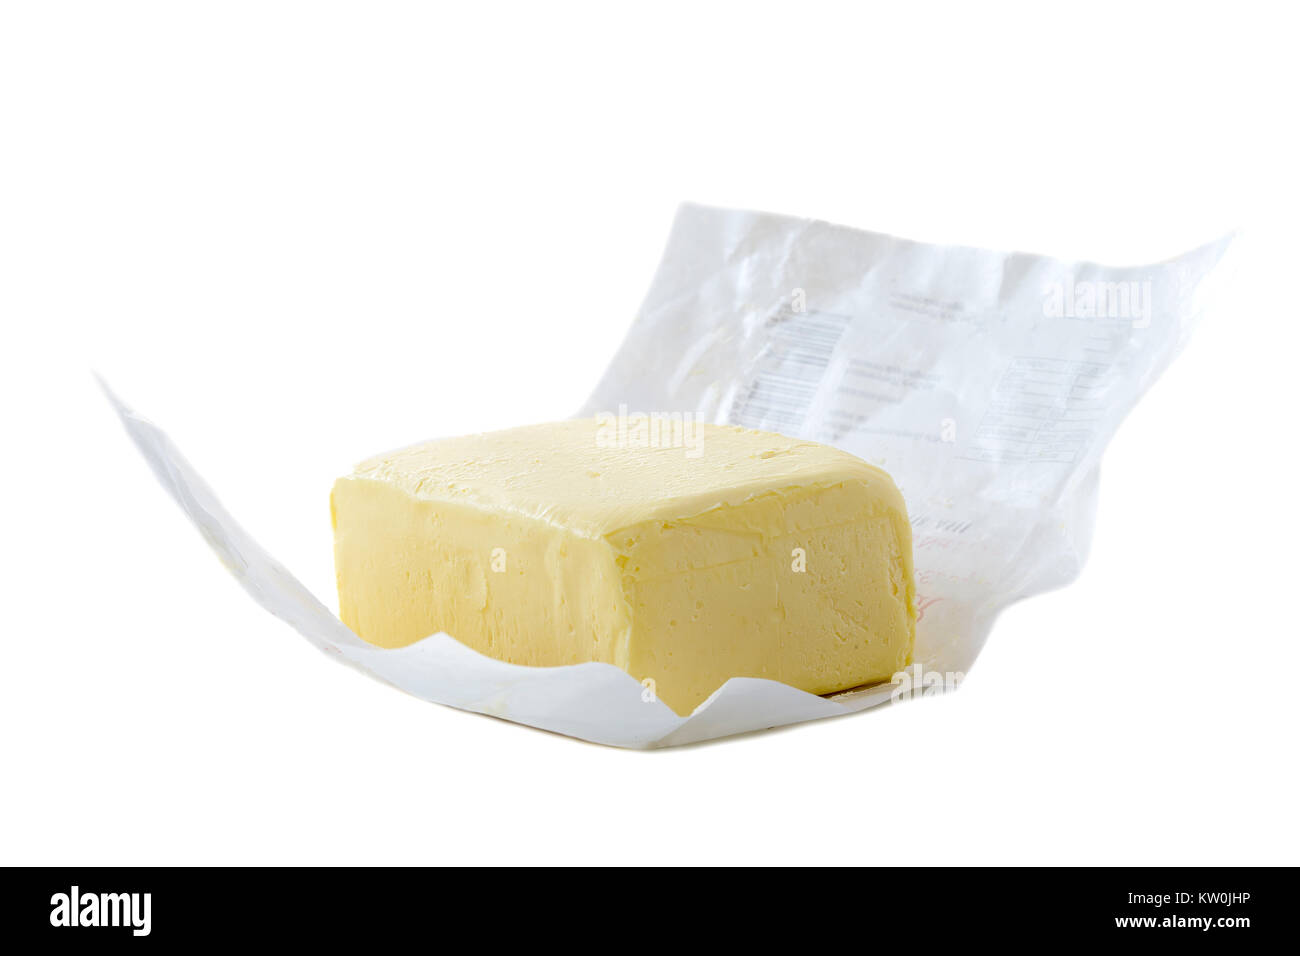 Close up of open pack of margarine or vegetarian butter on white backgraund. Stock Photo